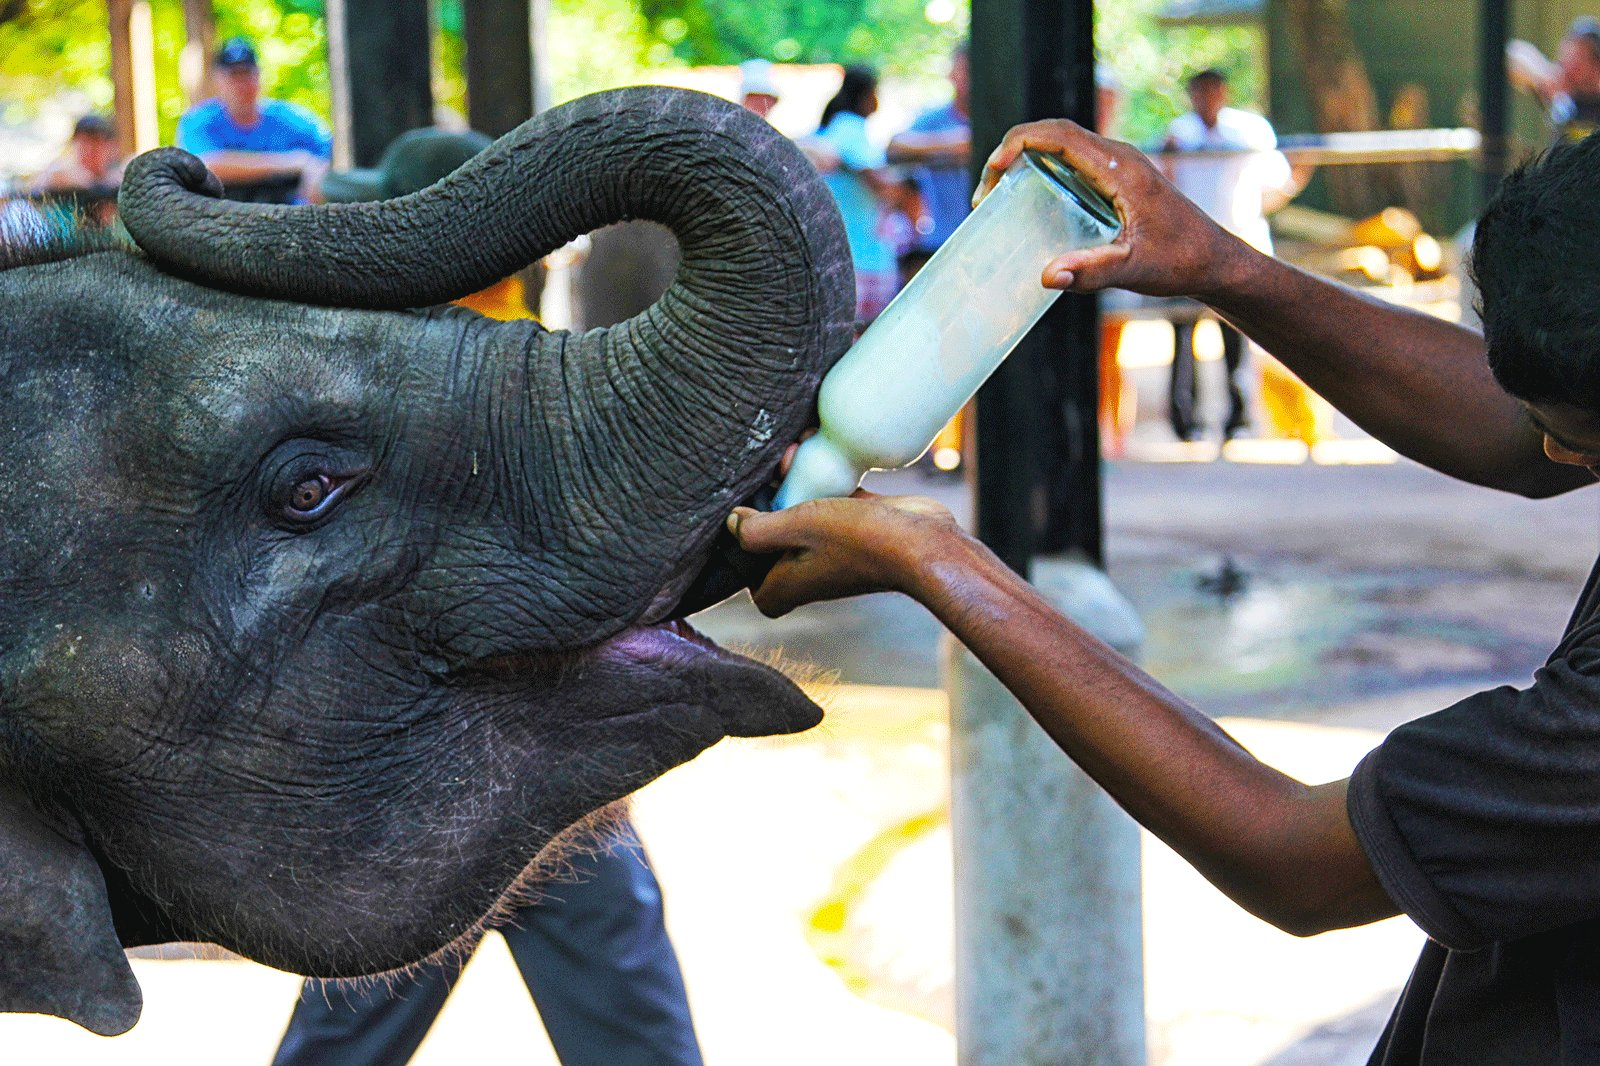 How to feed a baby elephant in Kandy